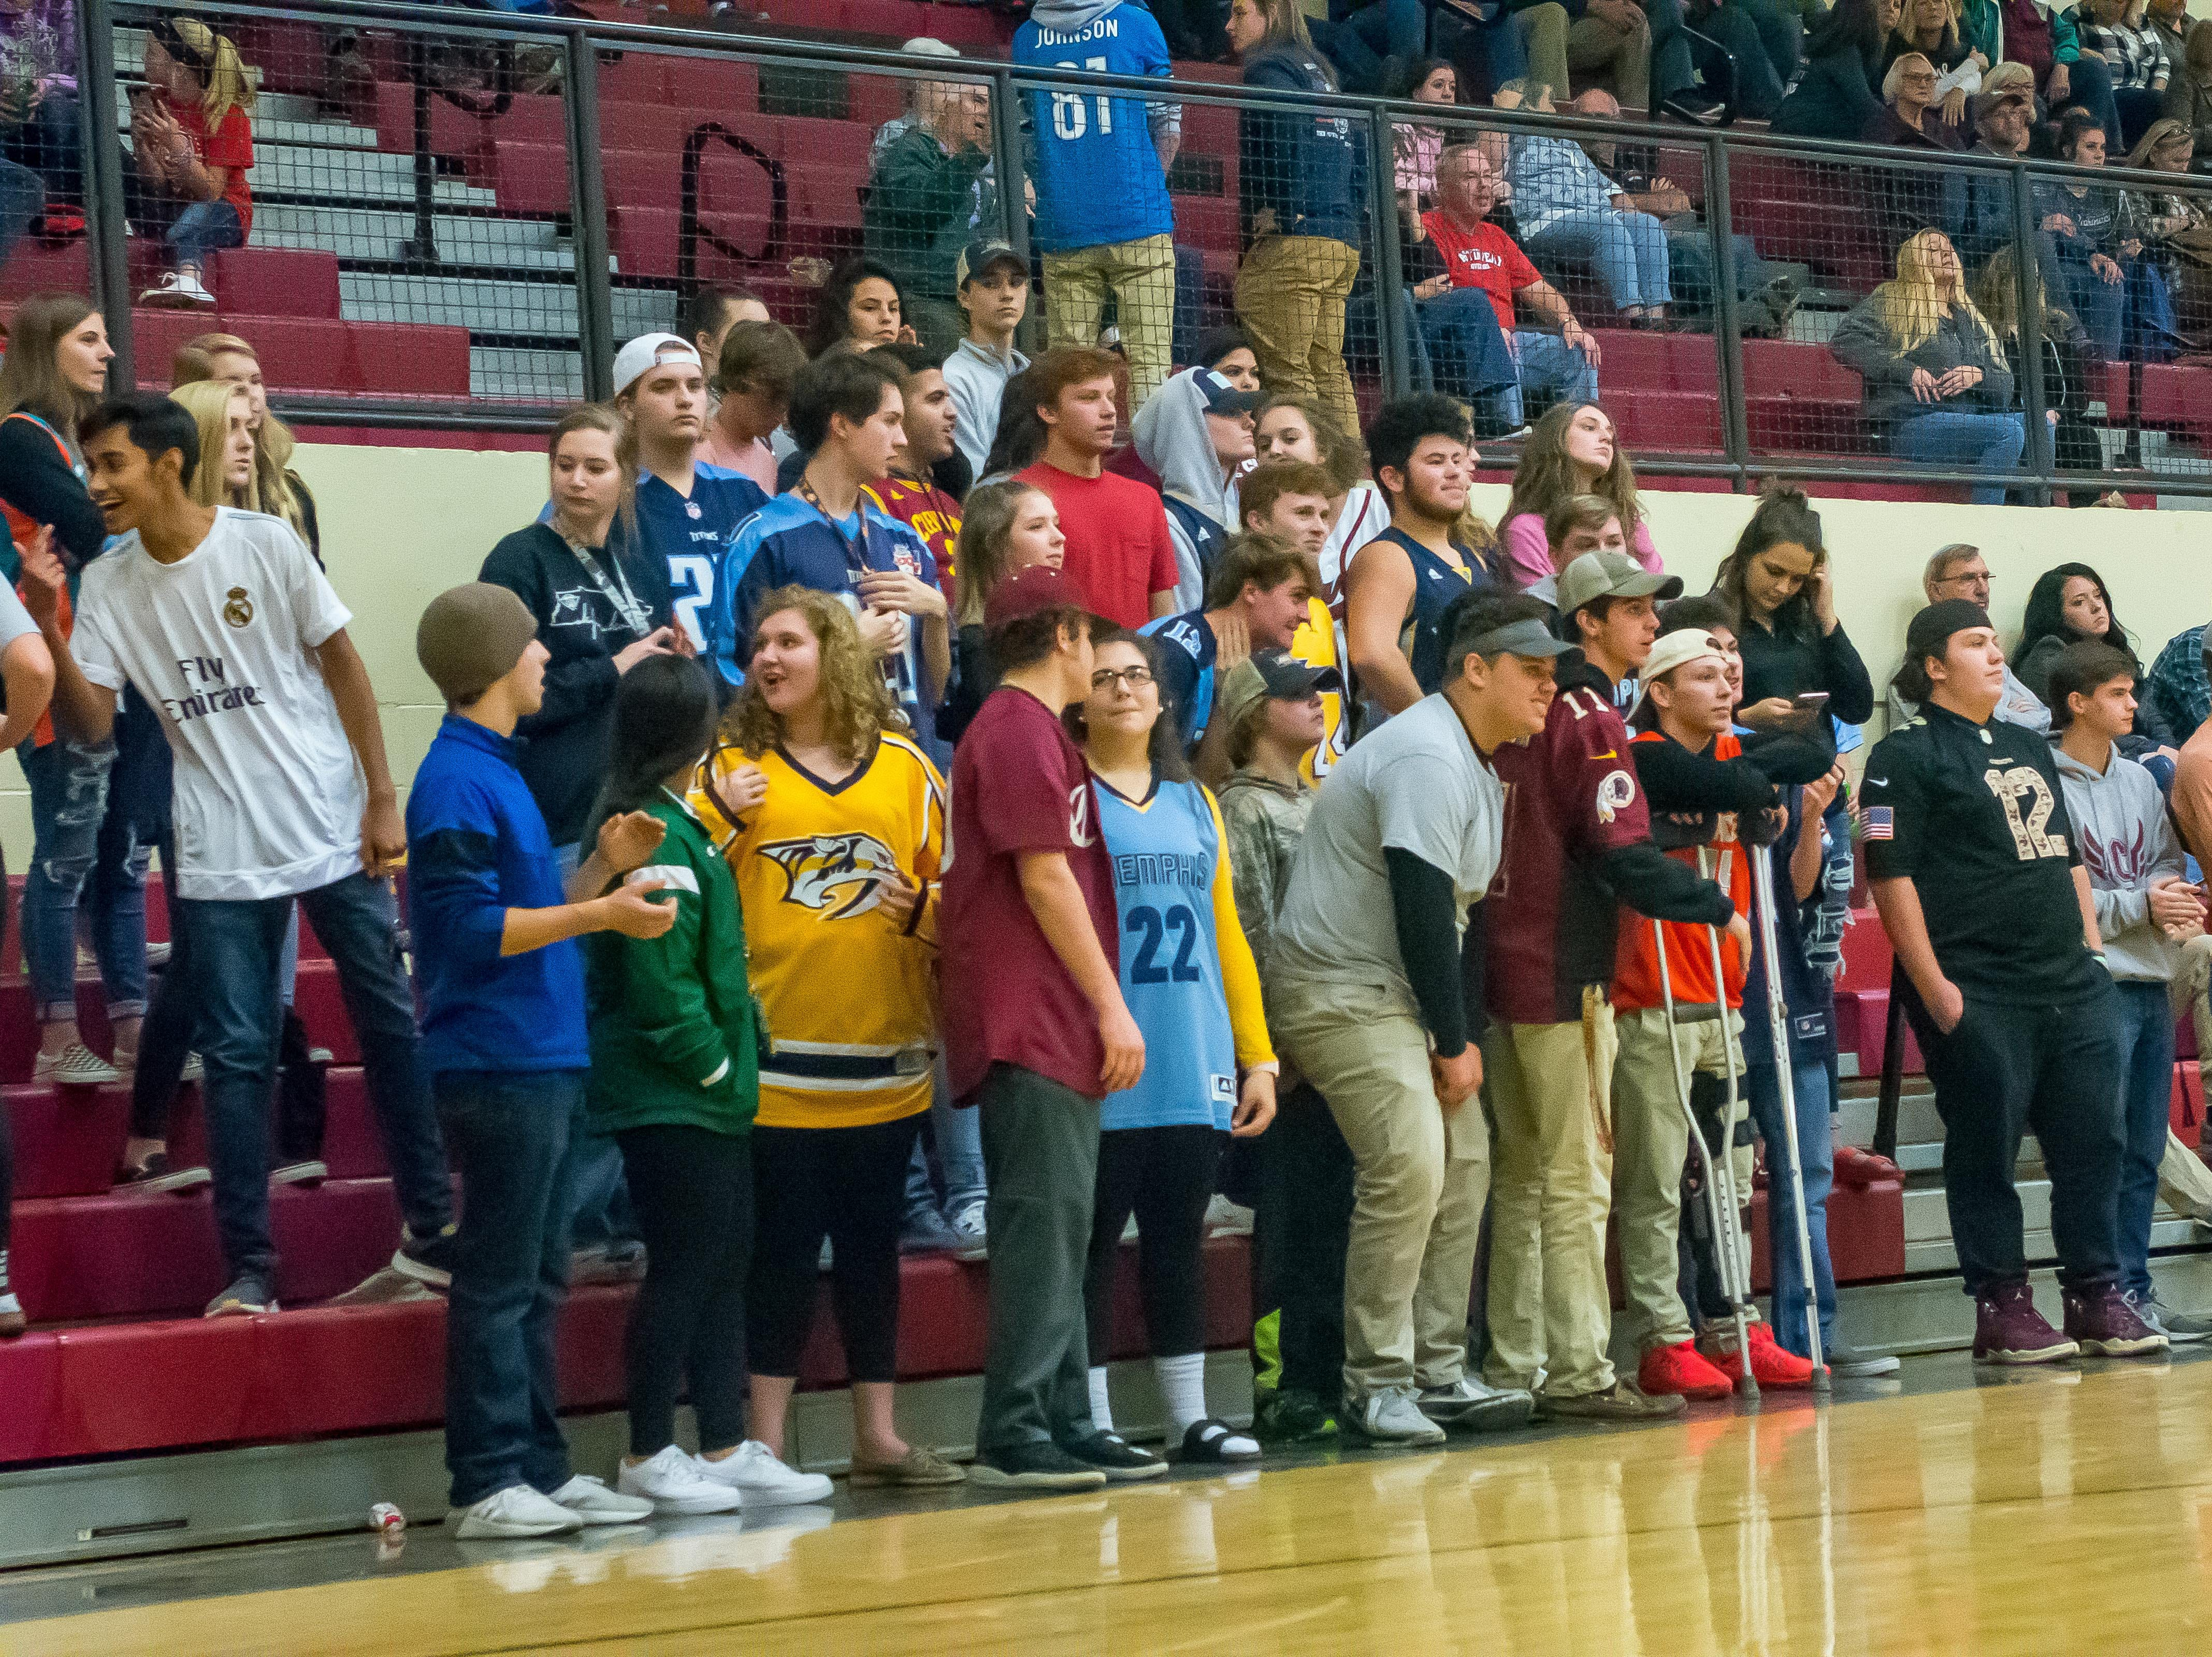 The Cheatham student section in early season form.